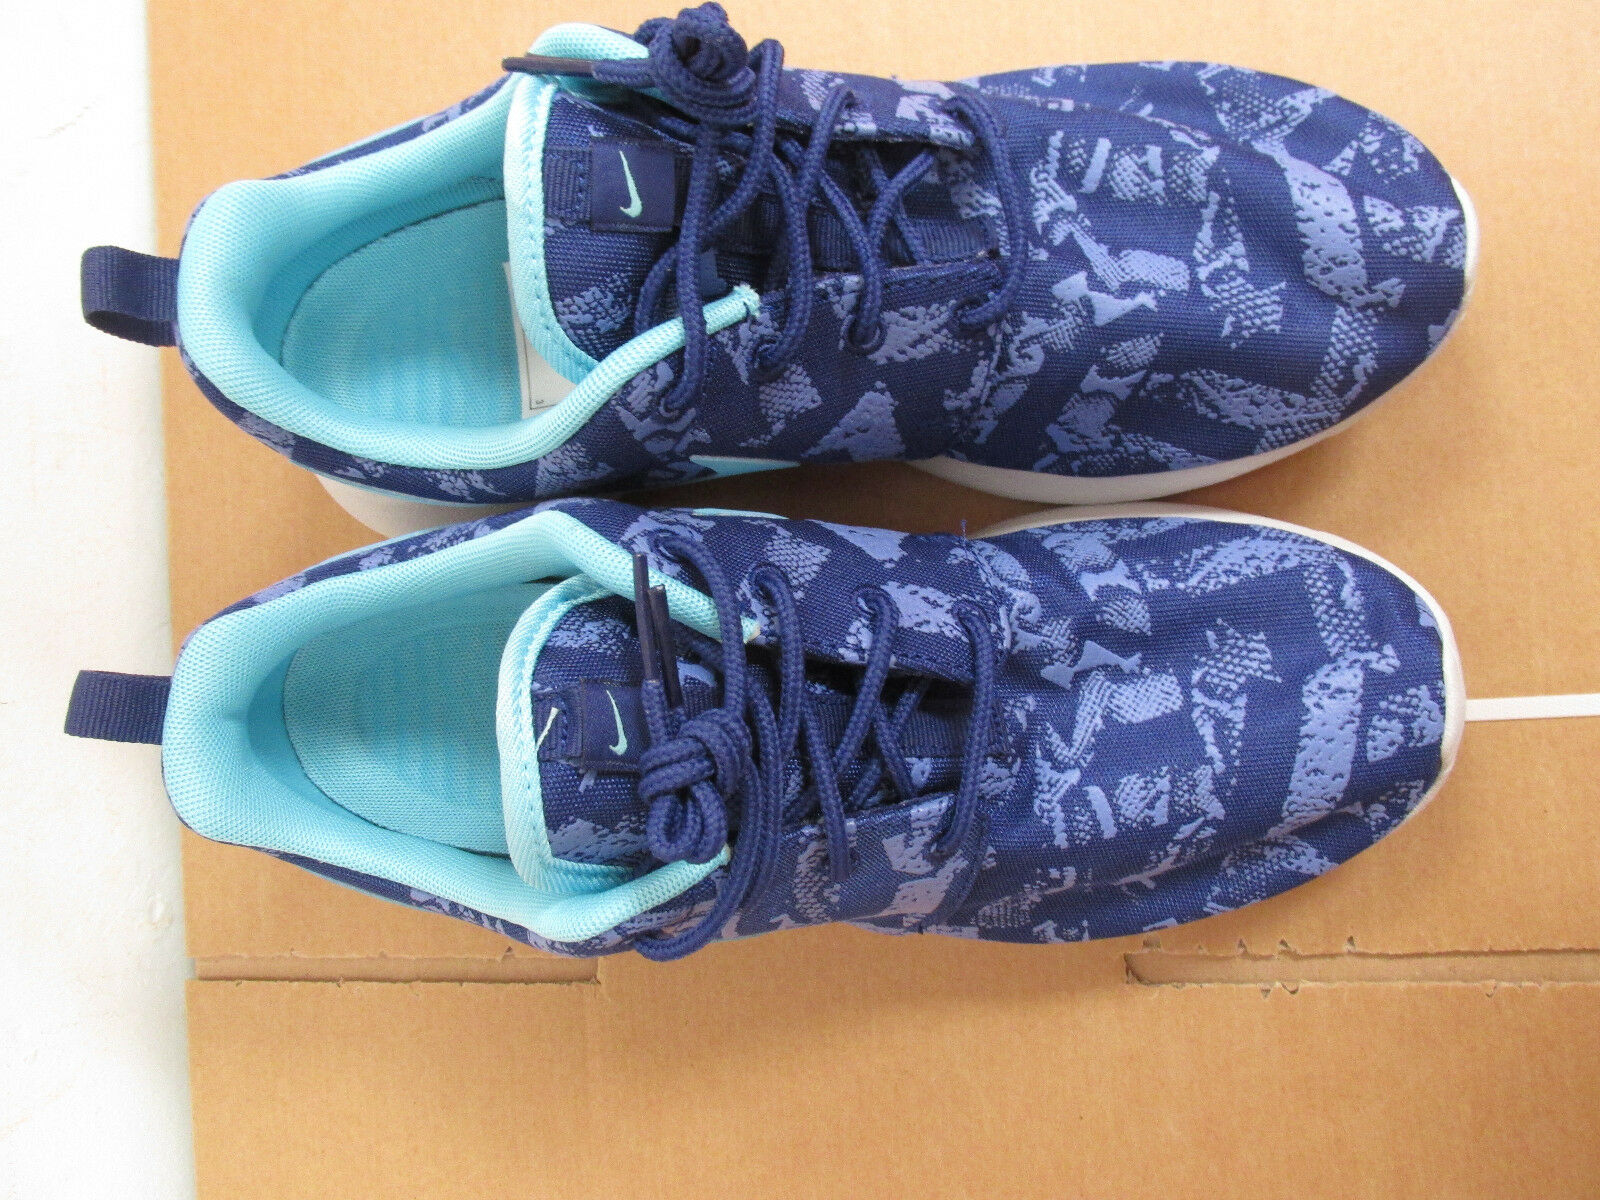 Nike Womens Roshe One Print Running Running Running Trainers 599432 440 shoes sneakers CLEARANCE 2bcb60